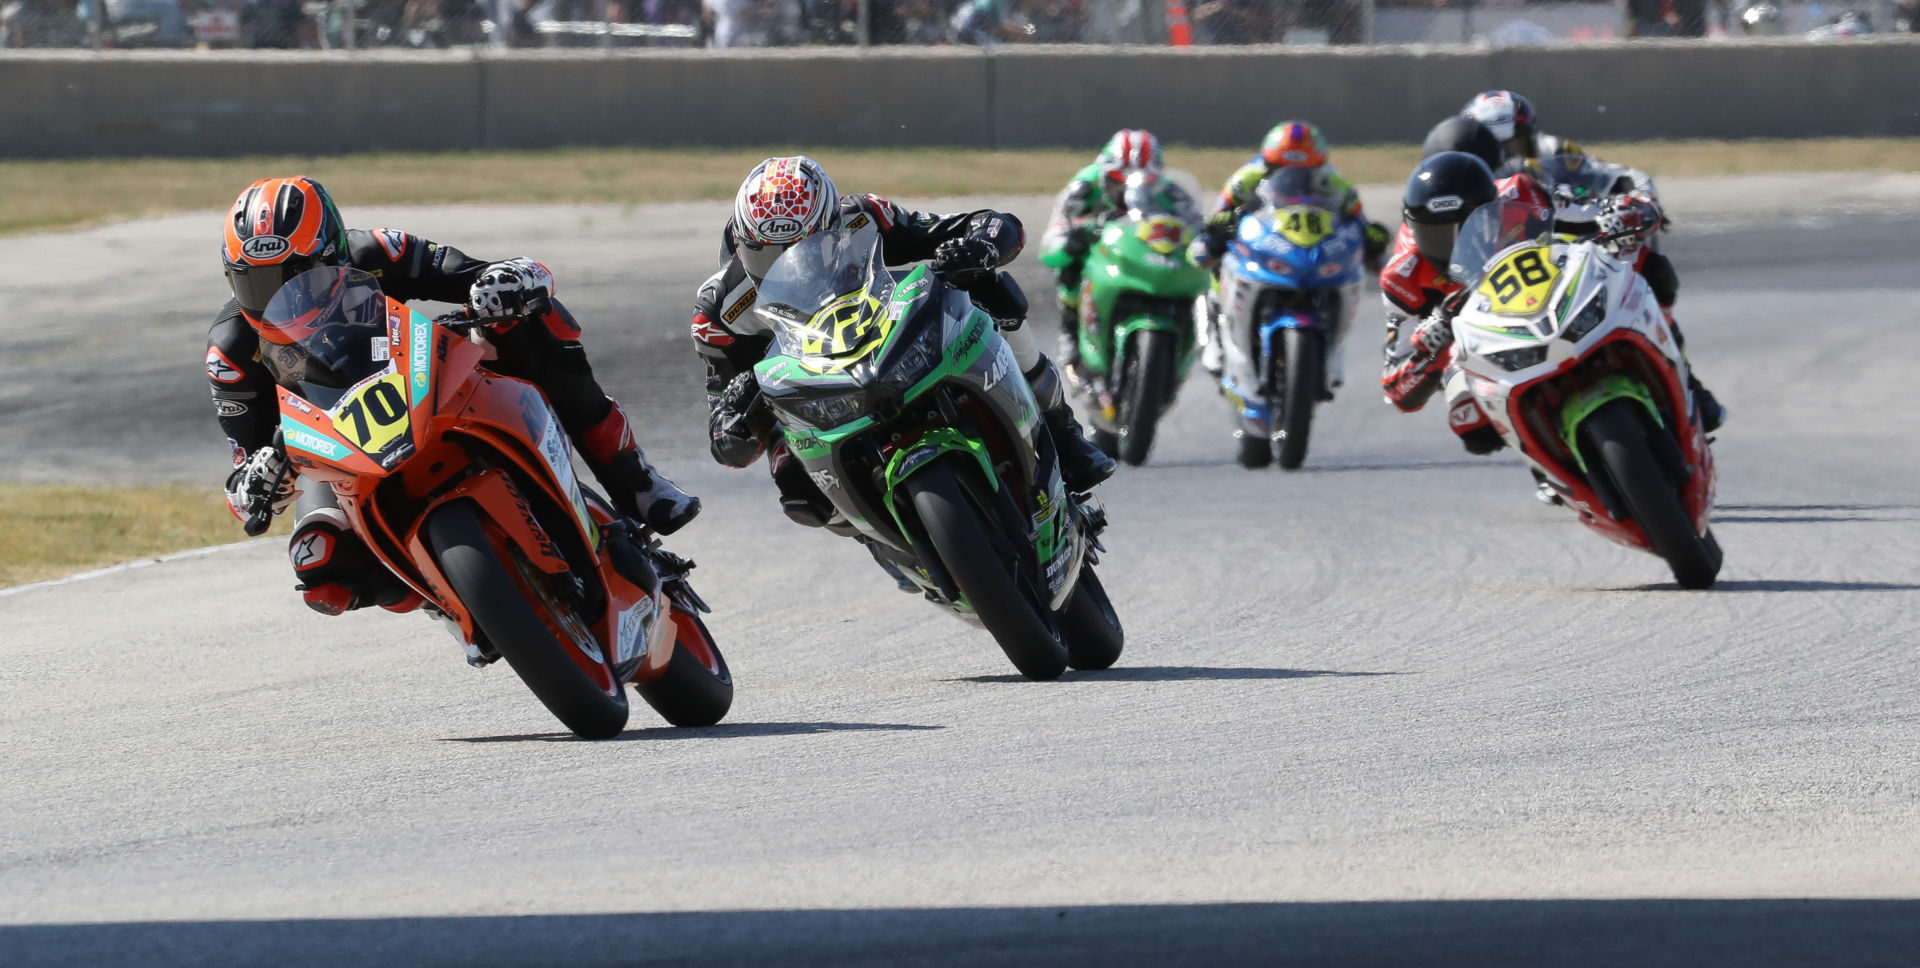 Tyler Scott (70) leads Benjamin Gloddy (72) by just four points in the battle for the SportbikeTrackGear.com Junior Cup Championship as the series heads to the Pacific Northwest and Ridge Motorsports Park this weekend. Photo by Brian J. Nelson.